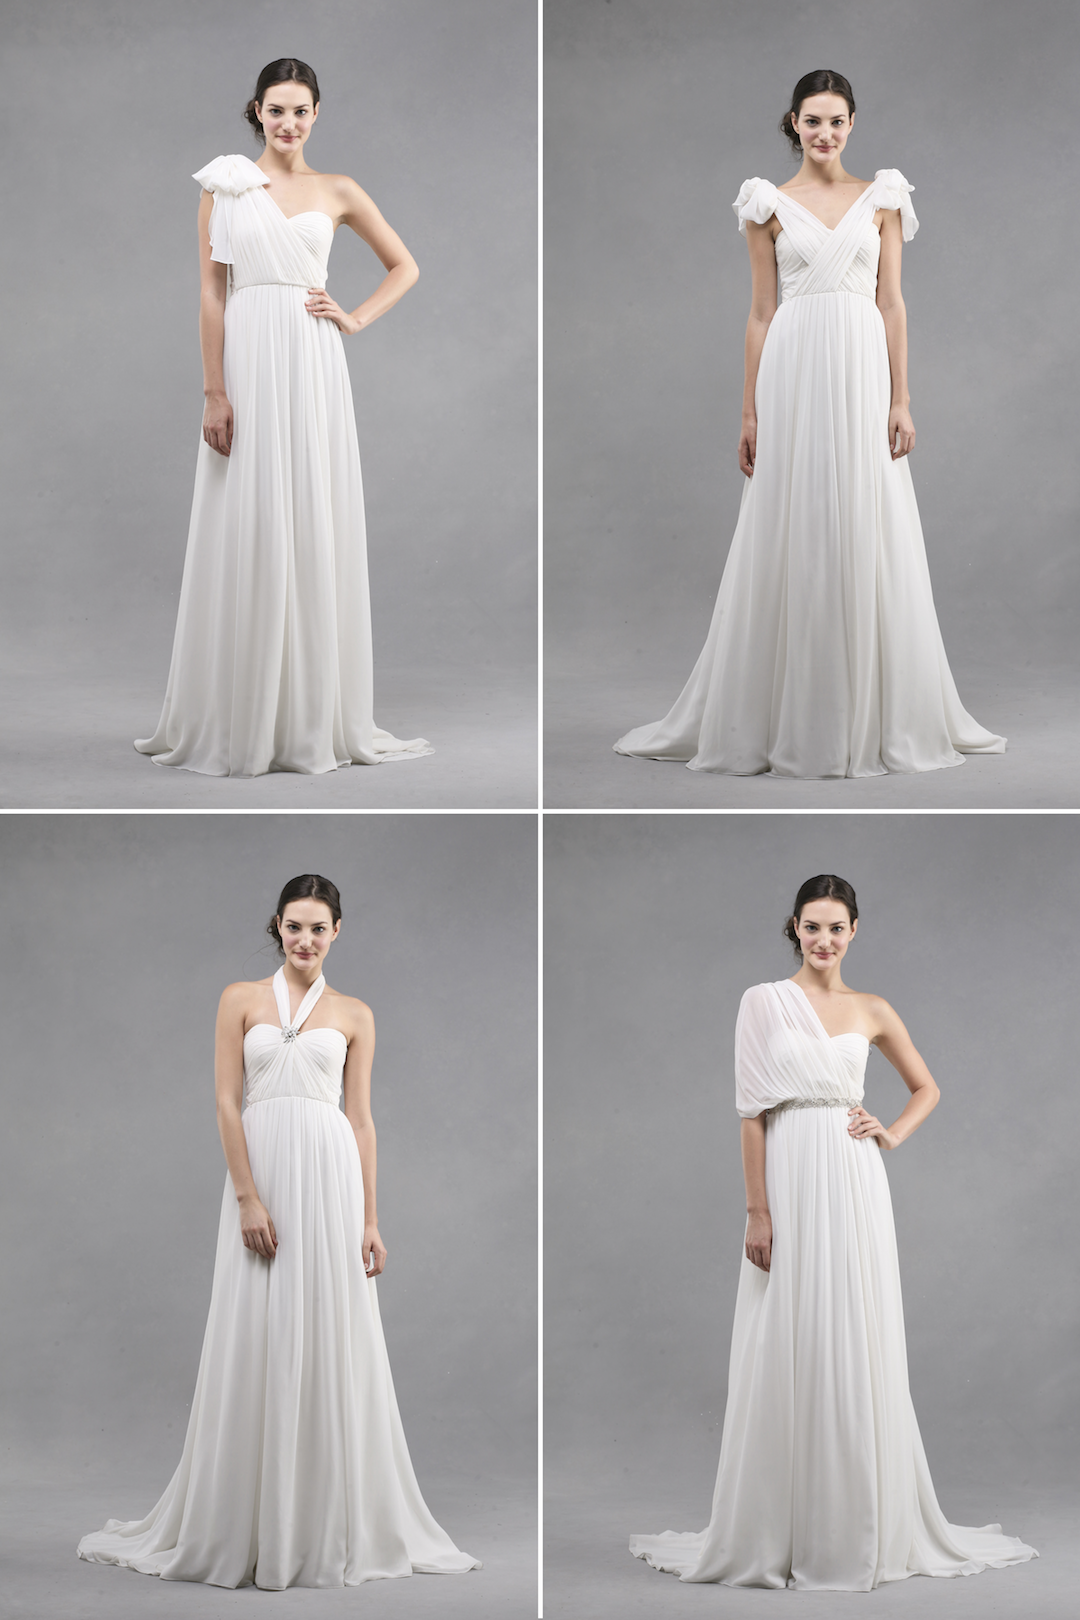 Convertible-wedding-dresses-by-jenny-yoo-2013-bridal.original